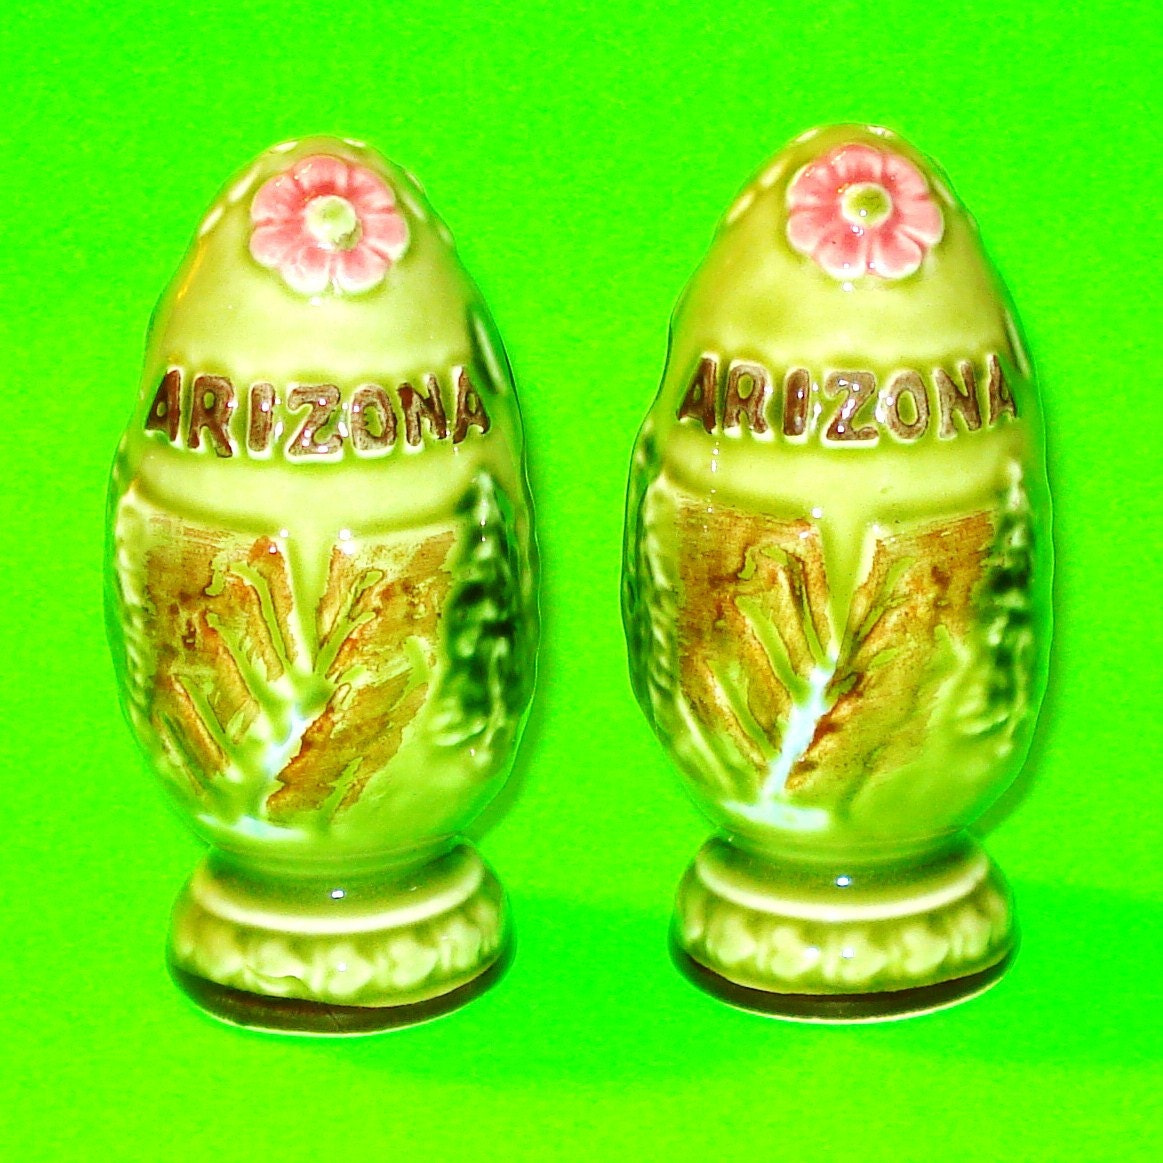 Vintage 1980s arizona ornate egg shaped souvenir salt and - Egg shaped salt and pepper shakers ...